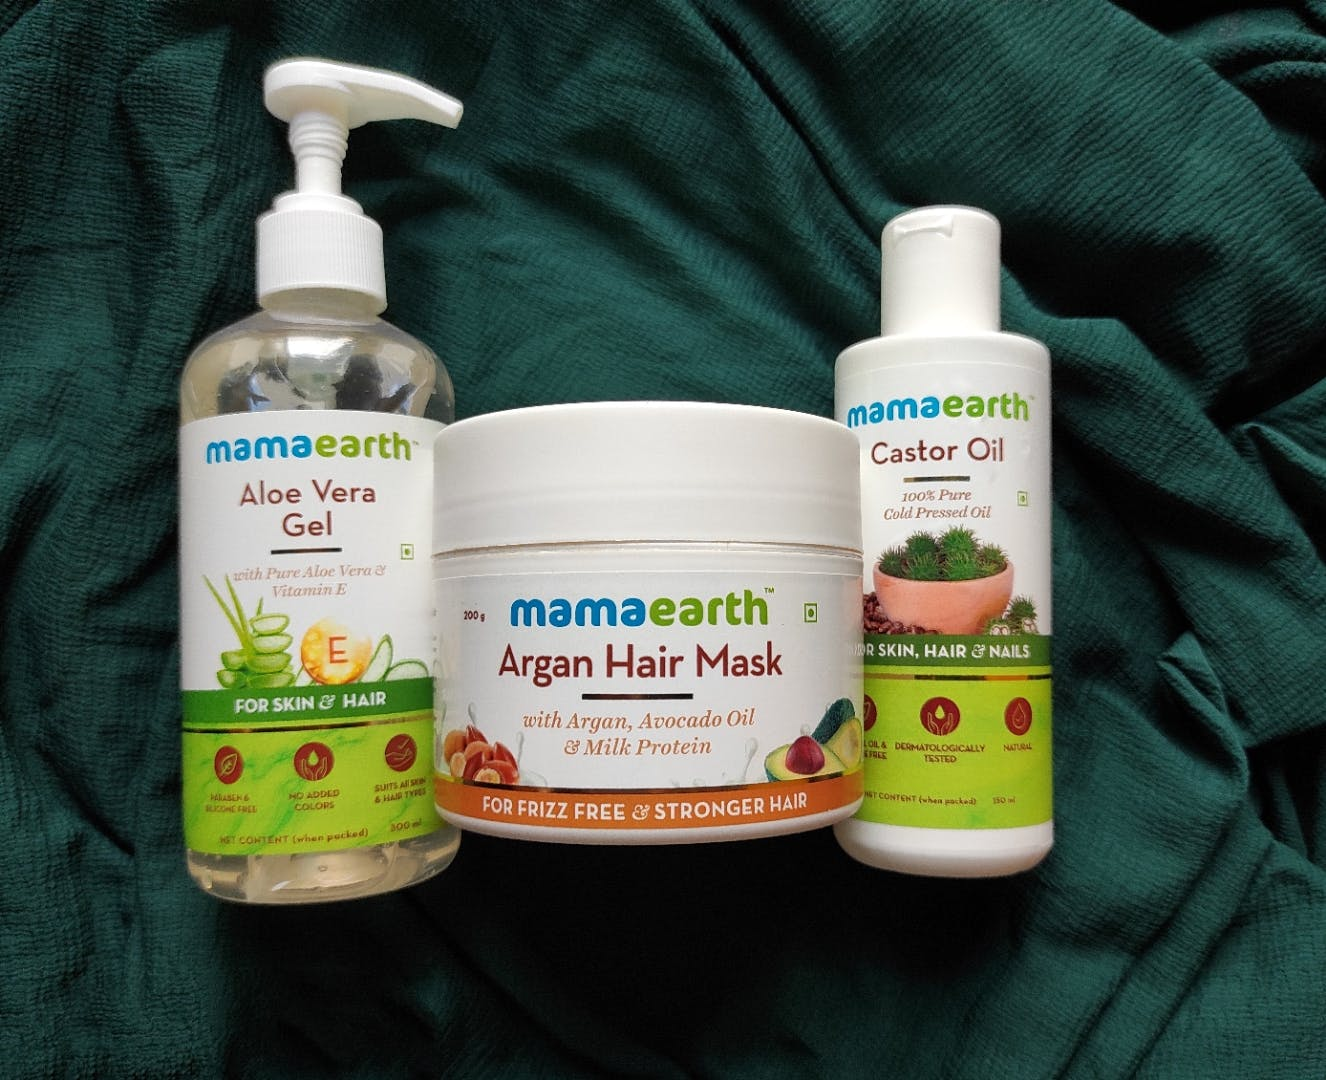 Product,Beauty,Herbal,Hand,Skin care,Plant,Liquid,Shampoo,Lotion,Hair care